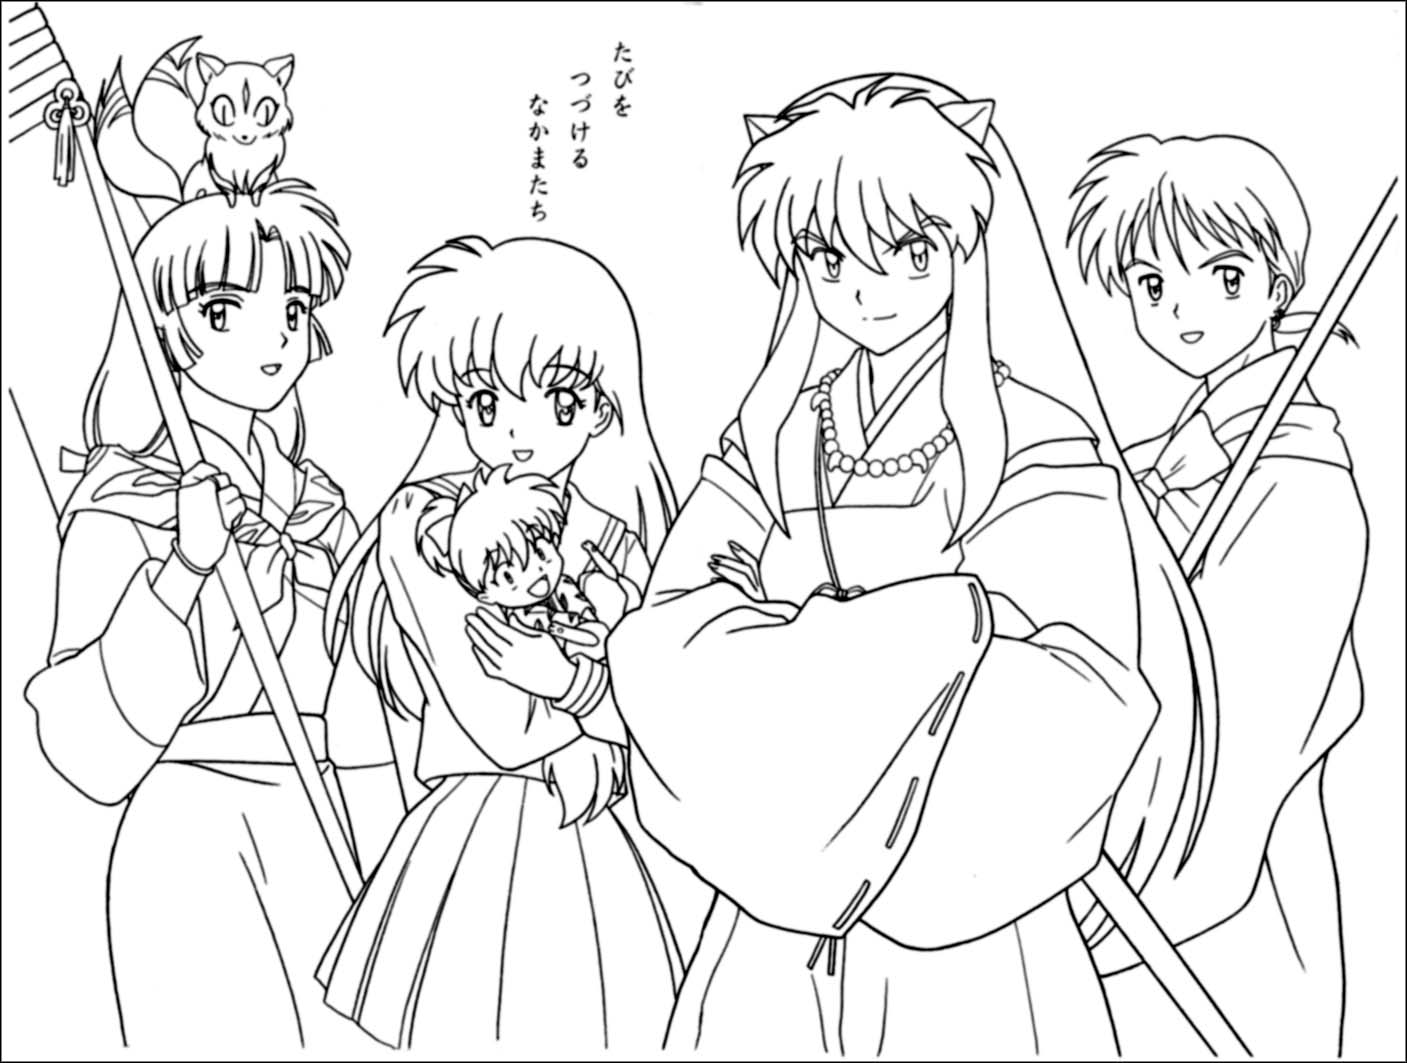 inuyasha coloring pages for kids,printable,coloring pages